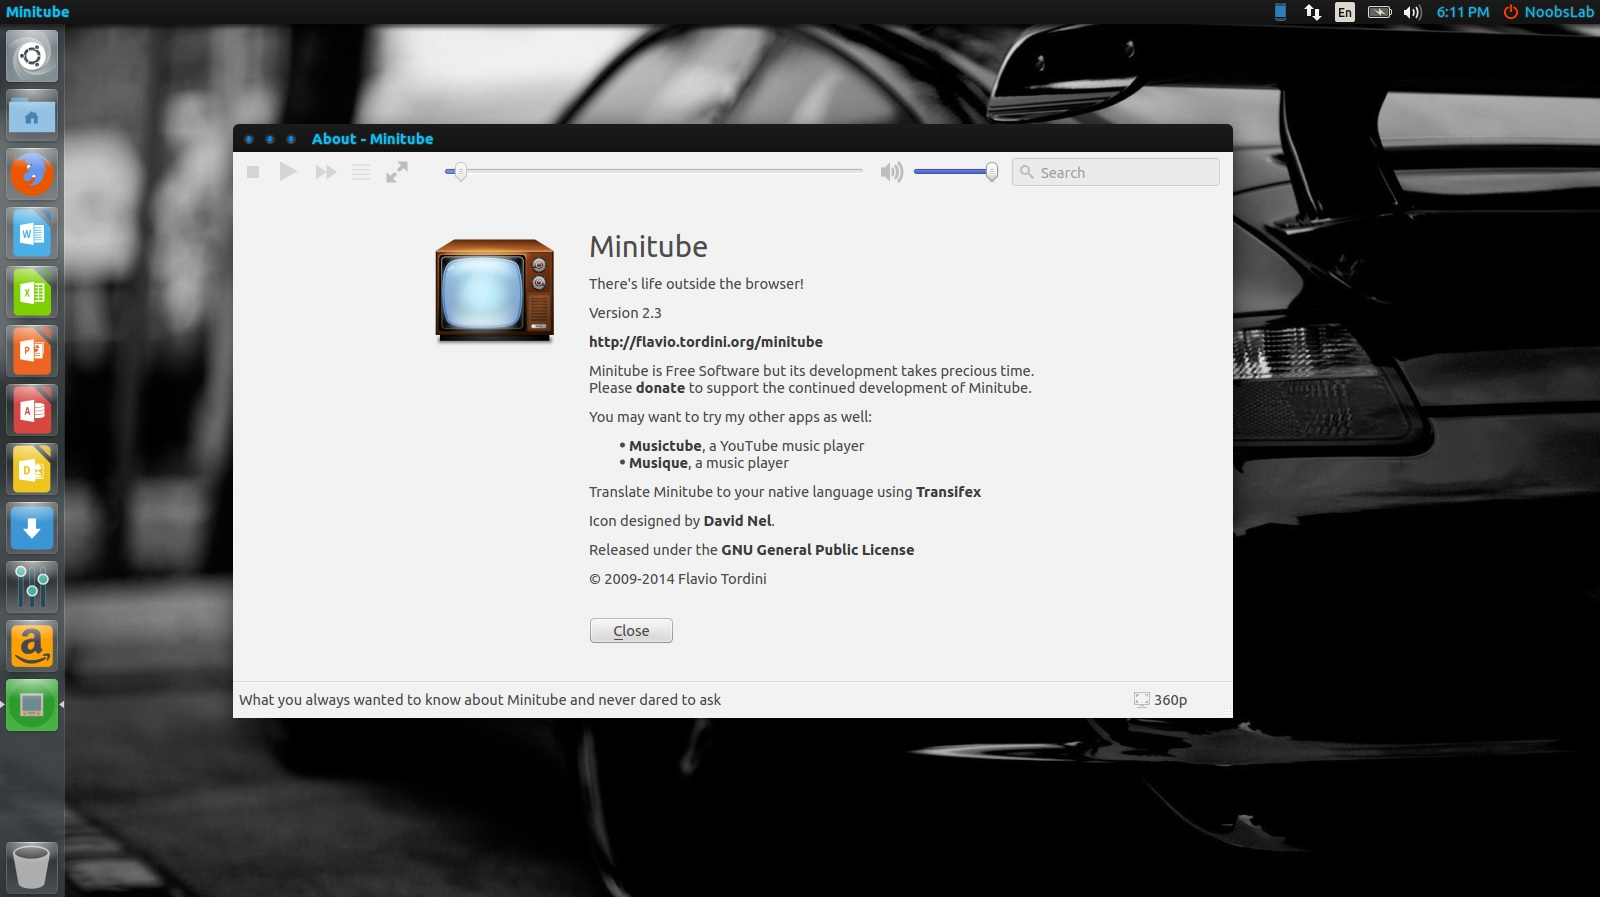 MiniTube Updated To 2 3 1 Version, Install In Ubuntu/Linux